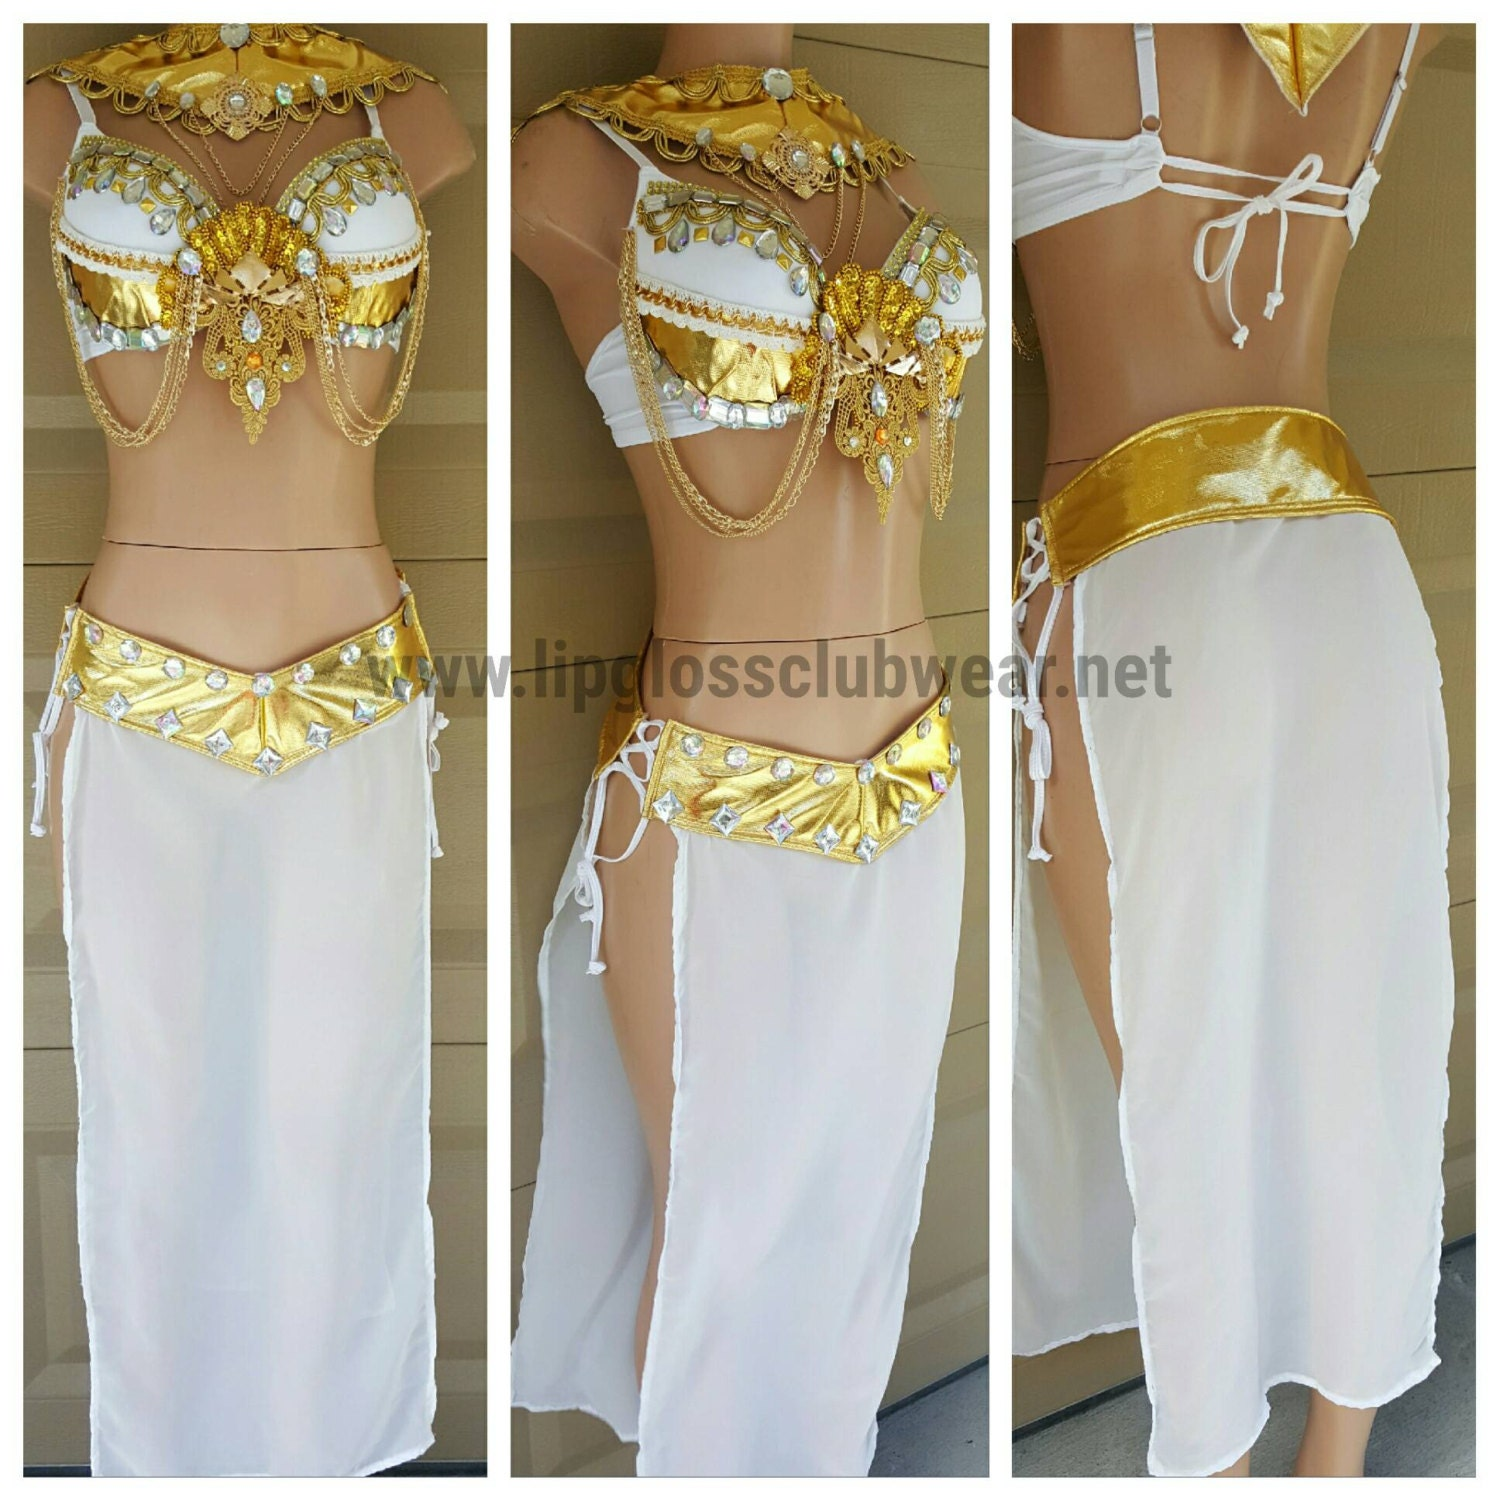 costume gentleman blossom gold coast costumes mens